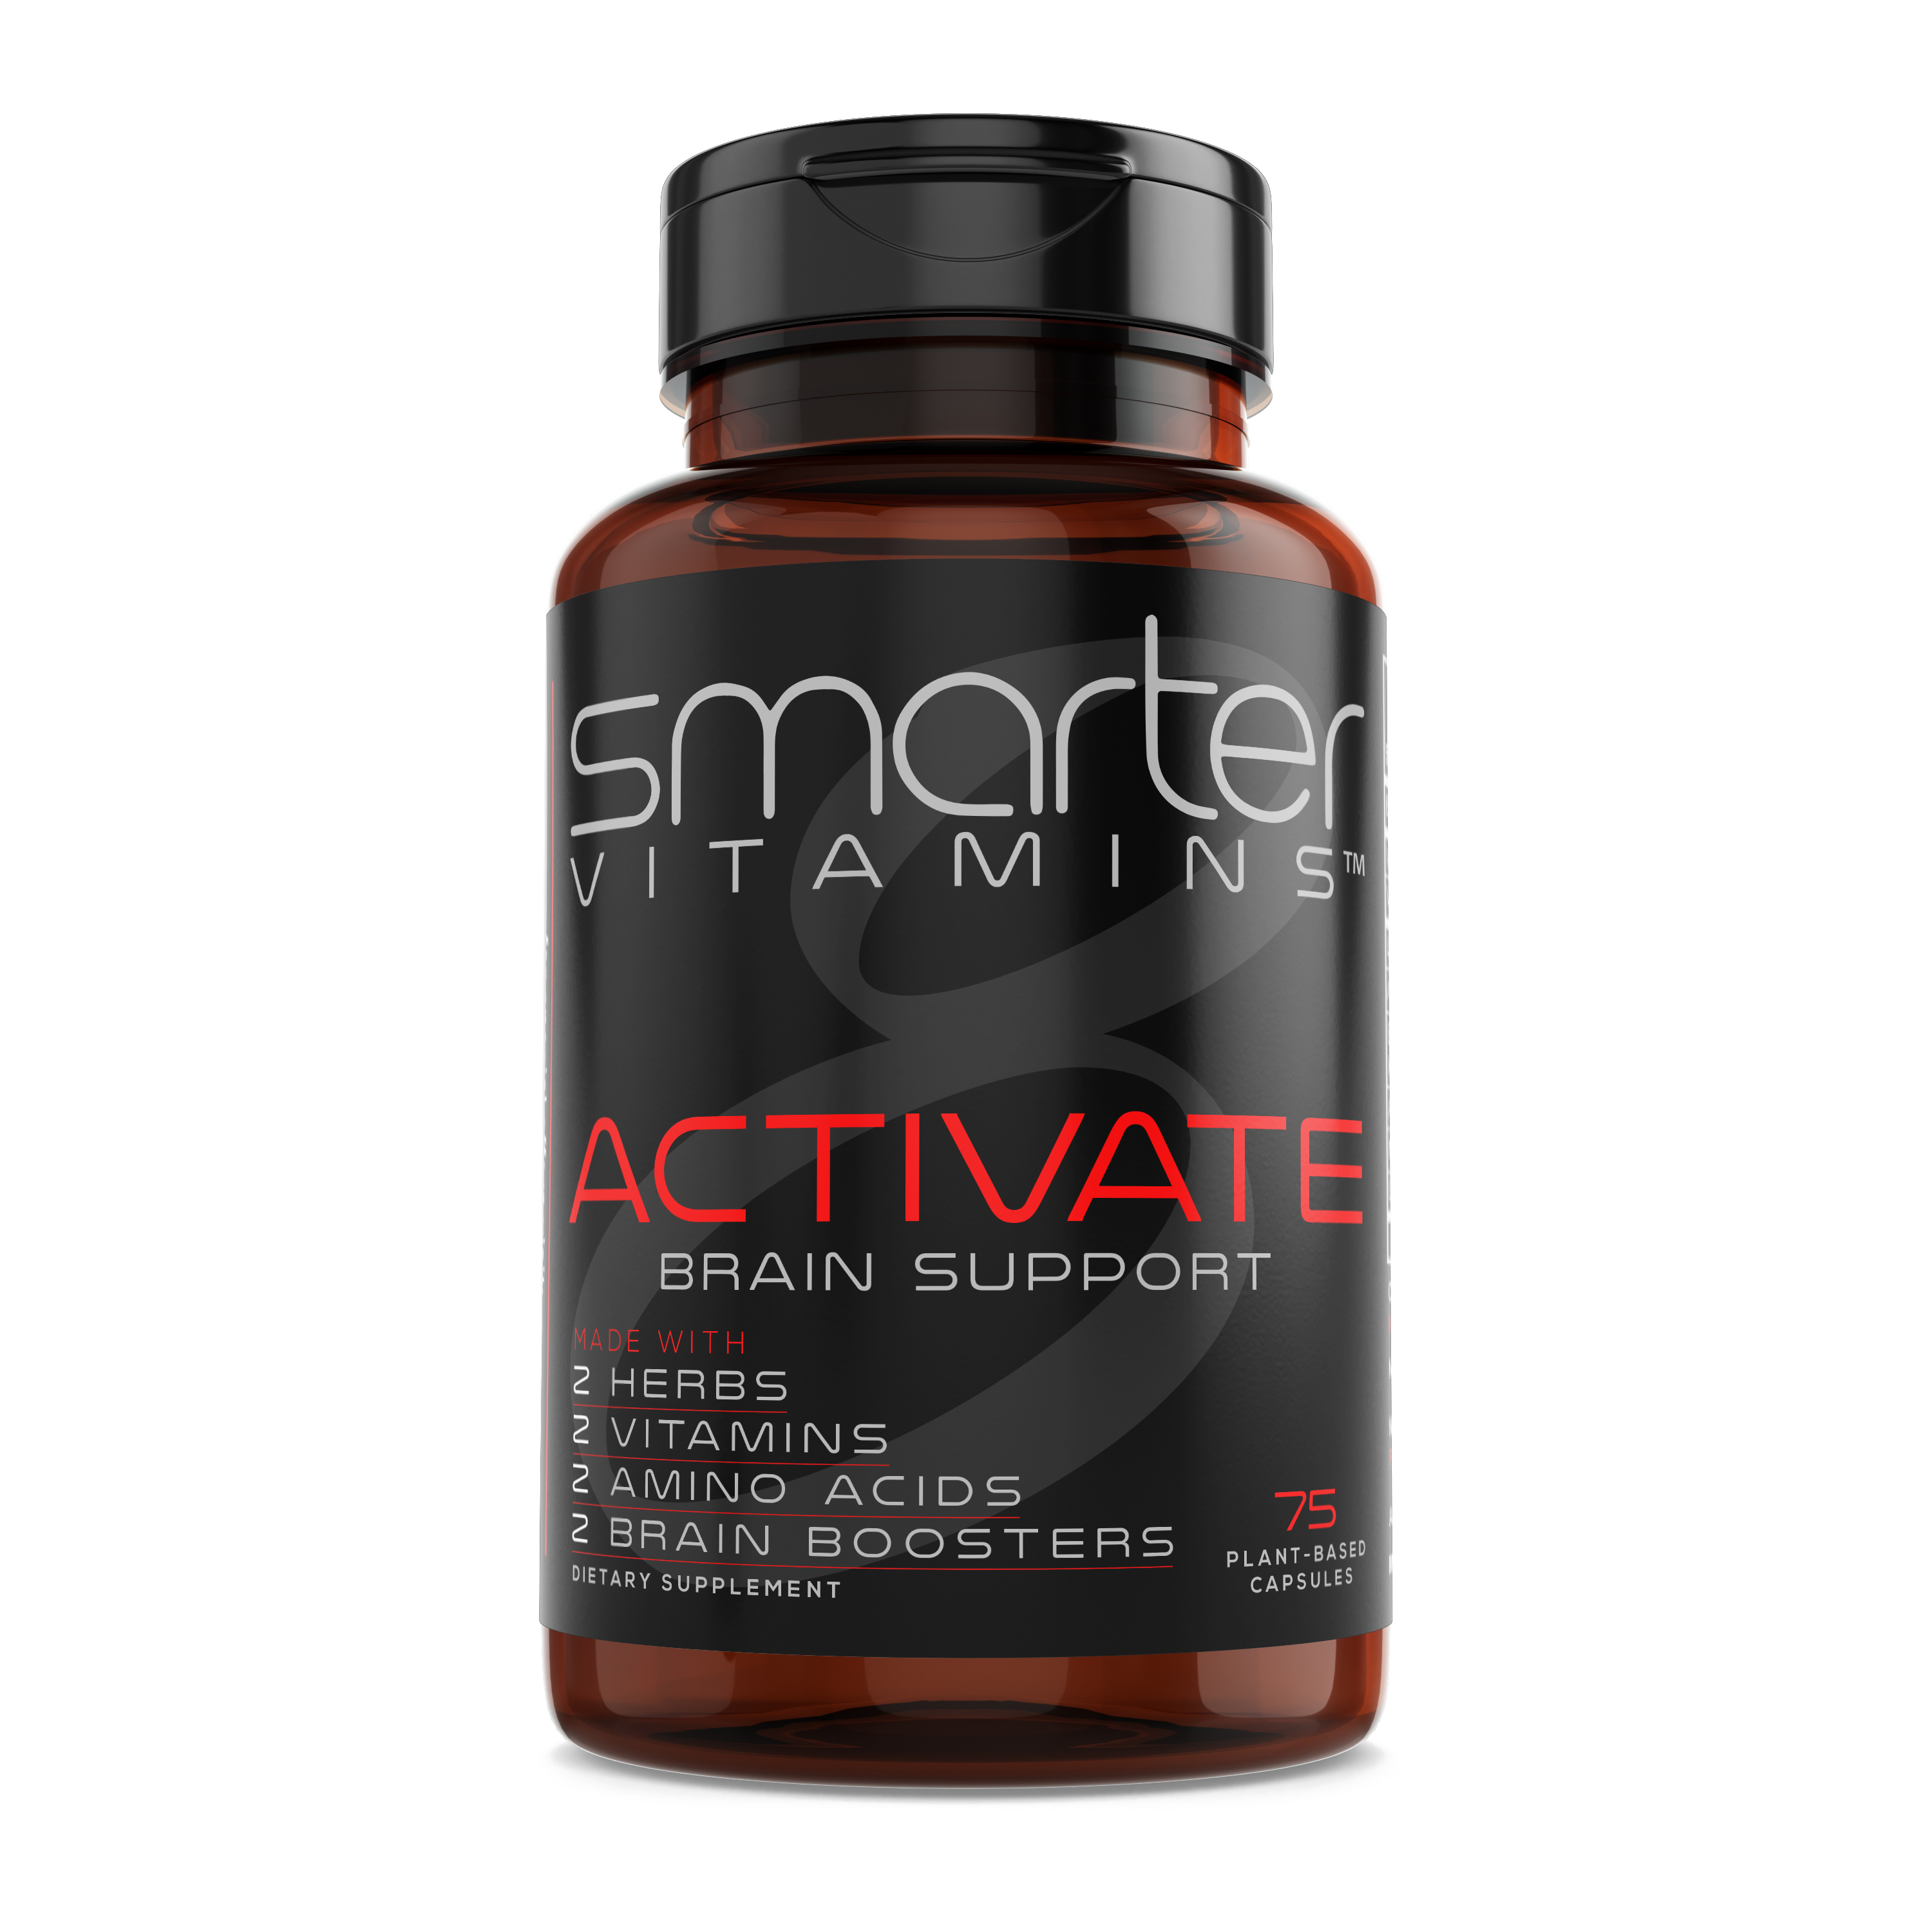 SmarterVitamins BRAIN HEALTH Supplement Supports Brain Function, Promotes Memory + Clarity, W/ L-Tyrosine, L-Carnitine, Bacopa 50%, Alpha-GPC, L-Dopa, Theanine, Vitamin B3 Niacin and Vitamin B6, Vegan